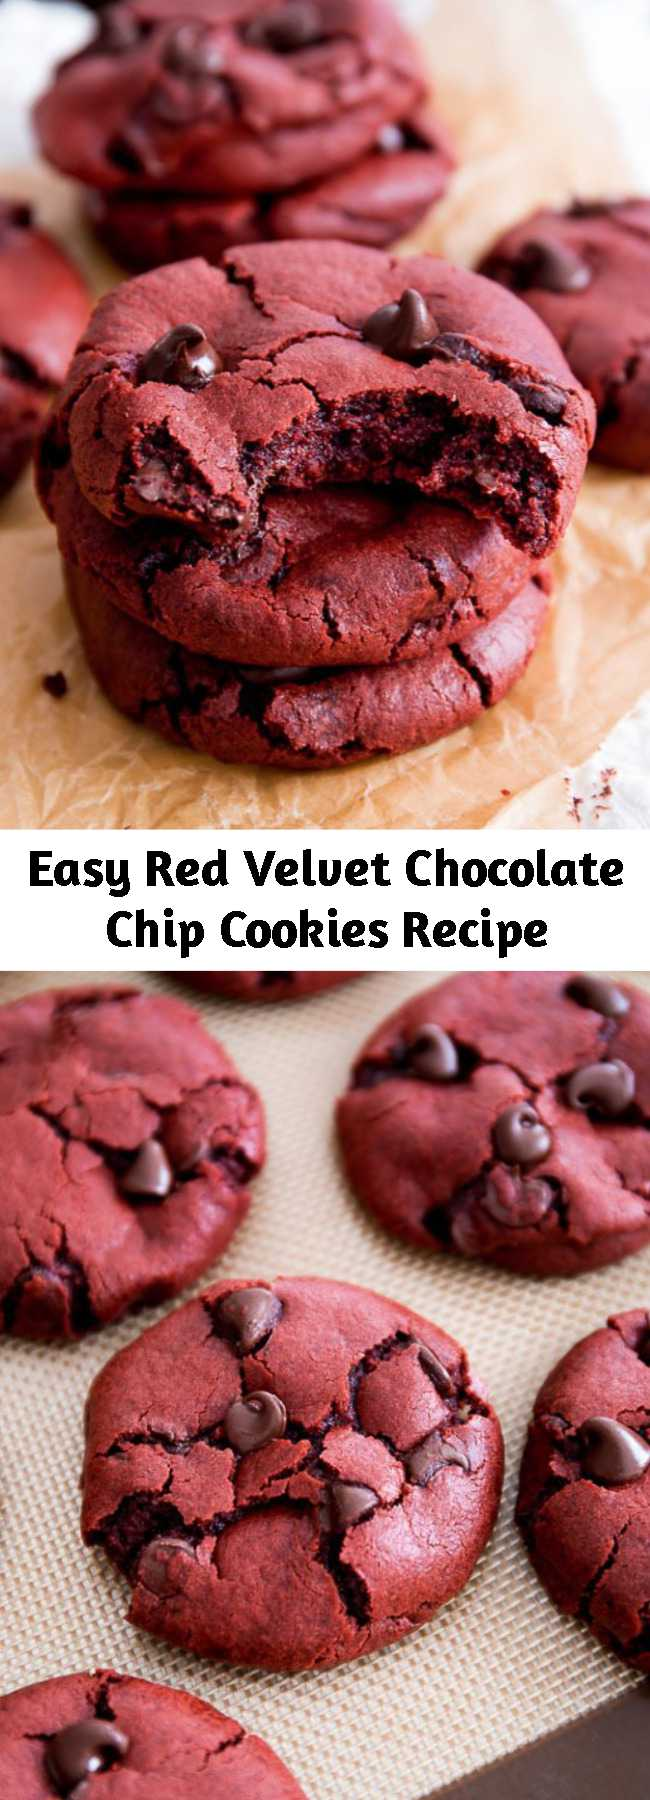 Easy Red Velvet Chocolate Chip Cookies Recipe - Red velvet cake meets a soft-baked chocolate chip cookie today. A blissful marriage of two classic desserts! These are soft-baked red velvet chocolate chip cookie recipe made from scratch.